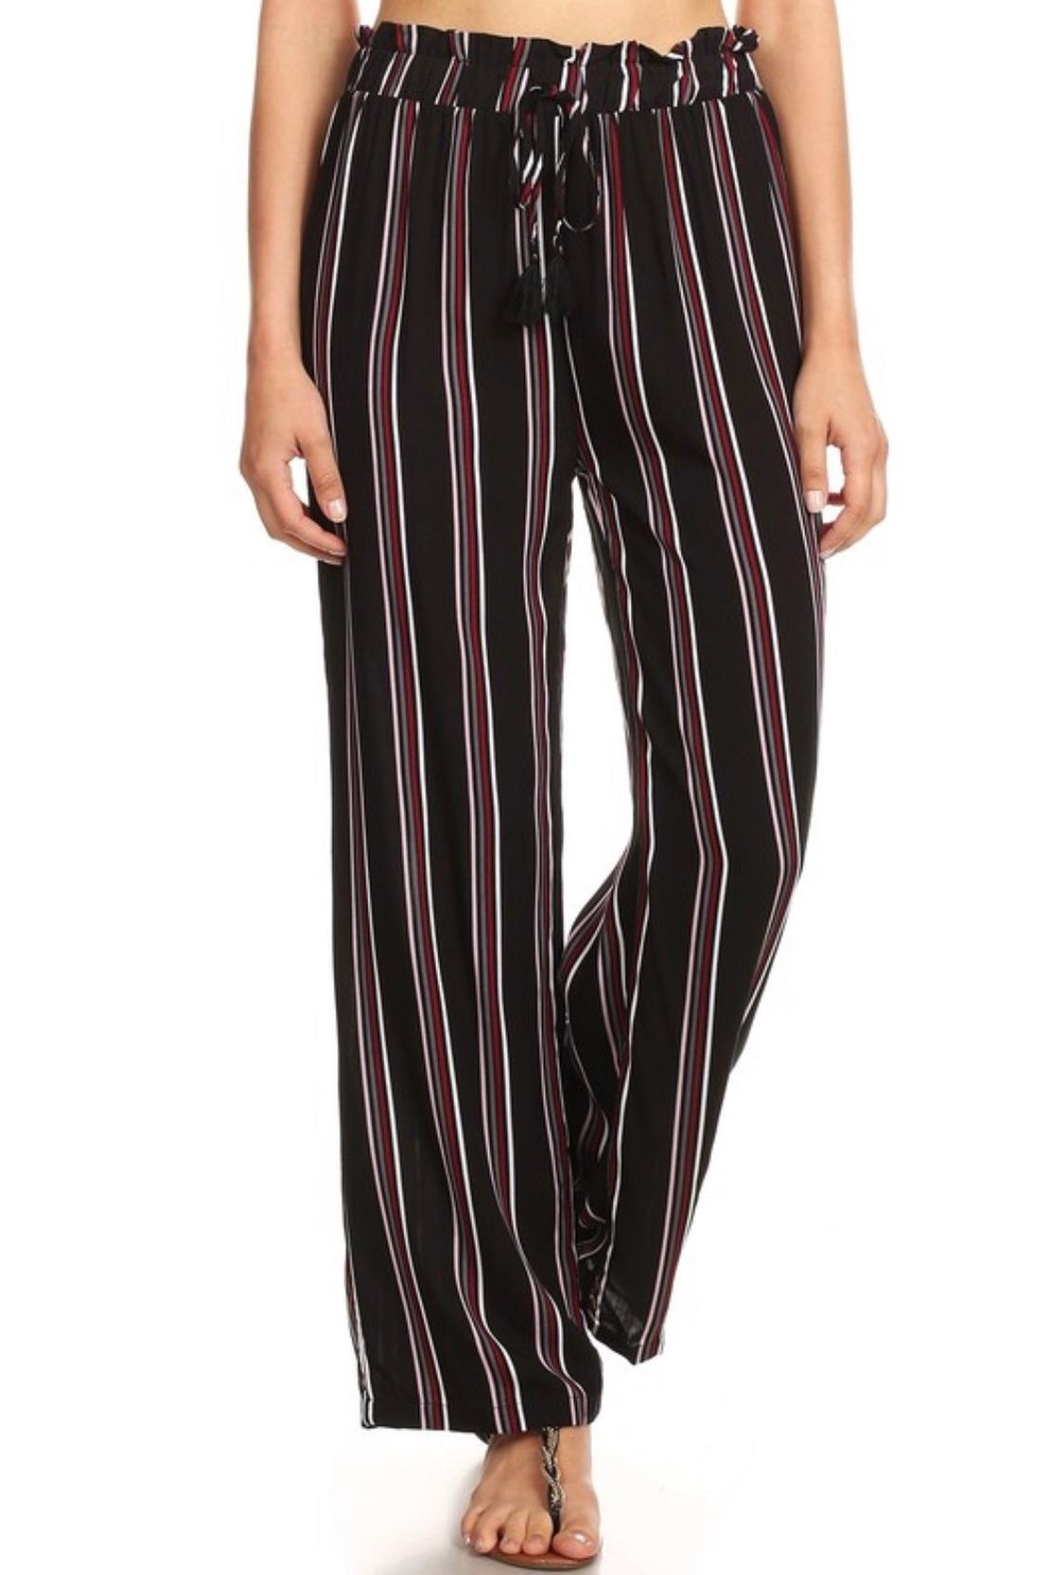 S&G Apparel Paper-Bag Waist Pants - Front Cropped Image